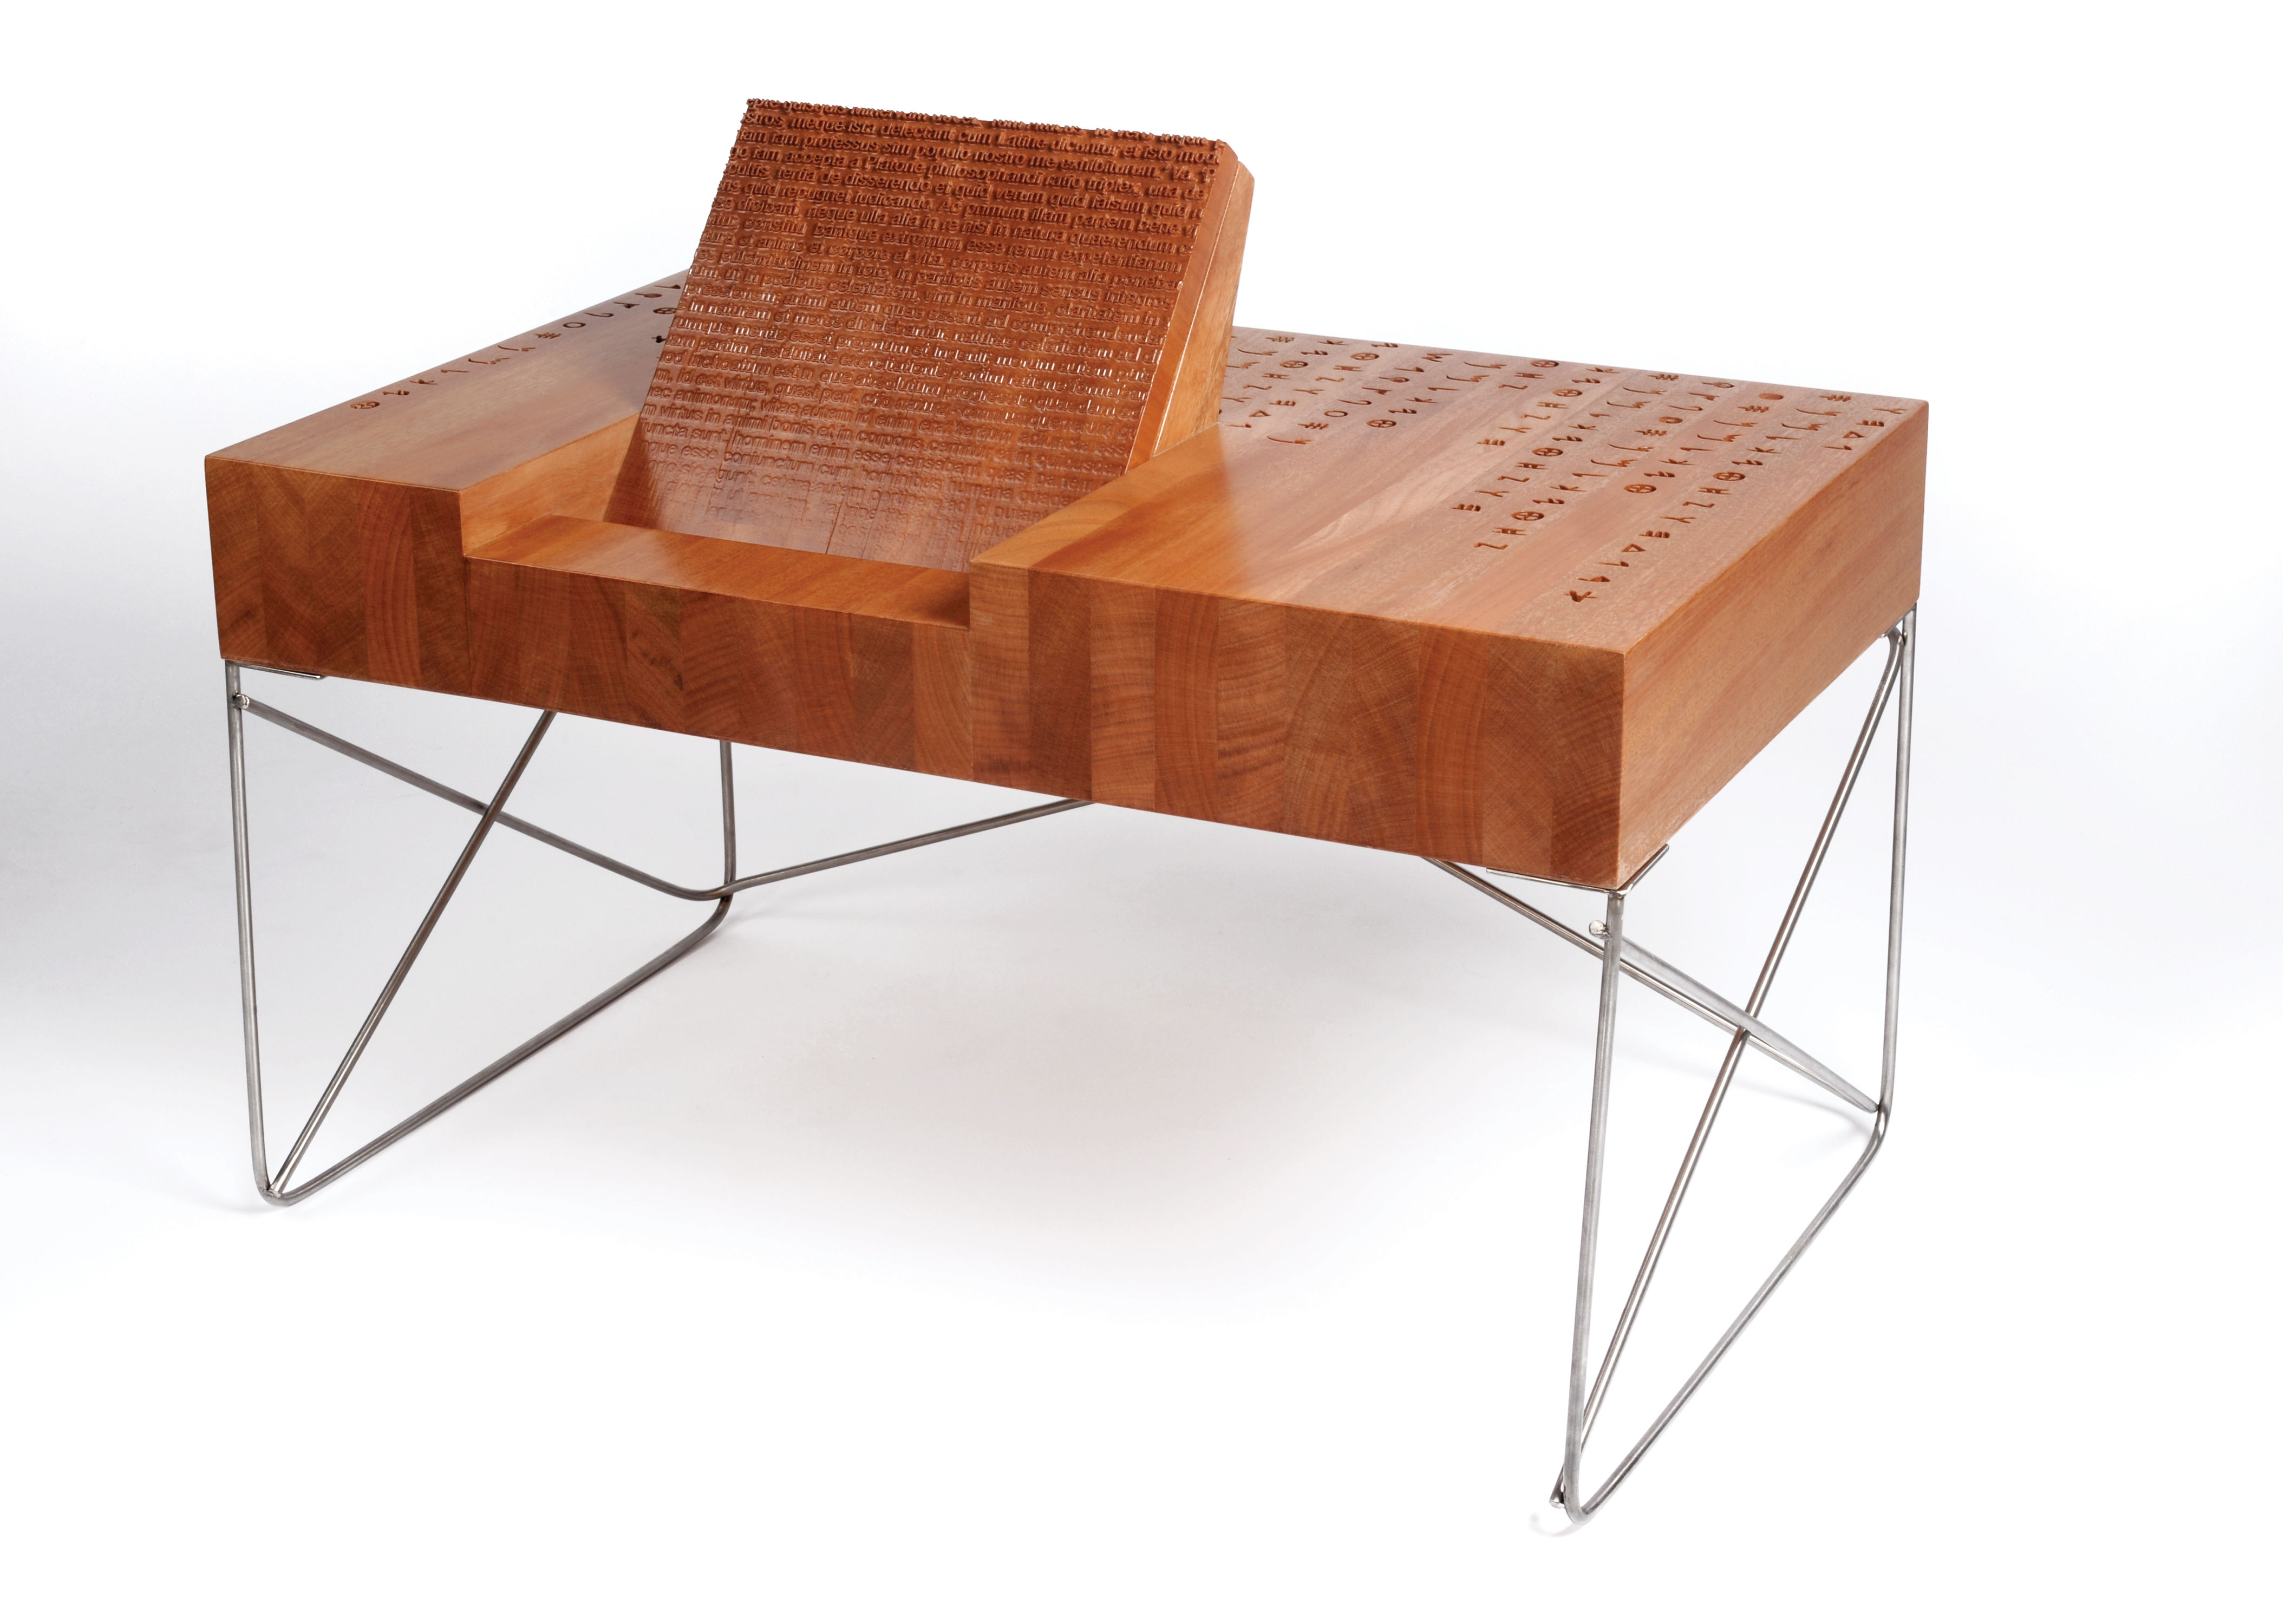 The shape of things to come contemporary design culture for Reading table design